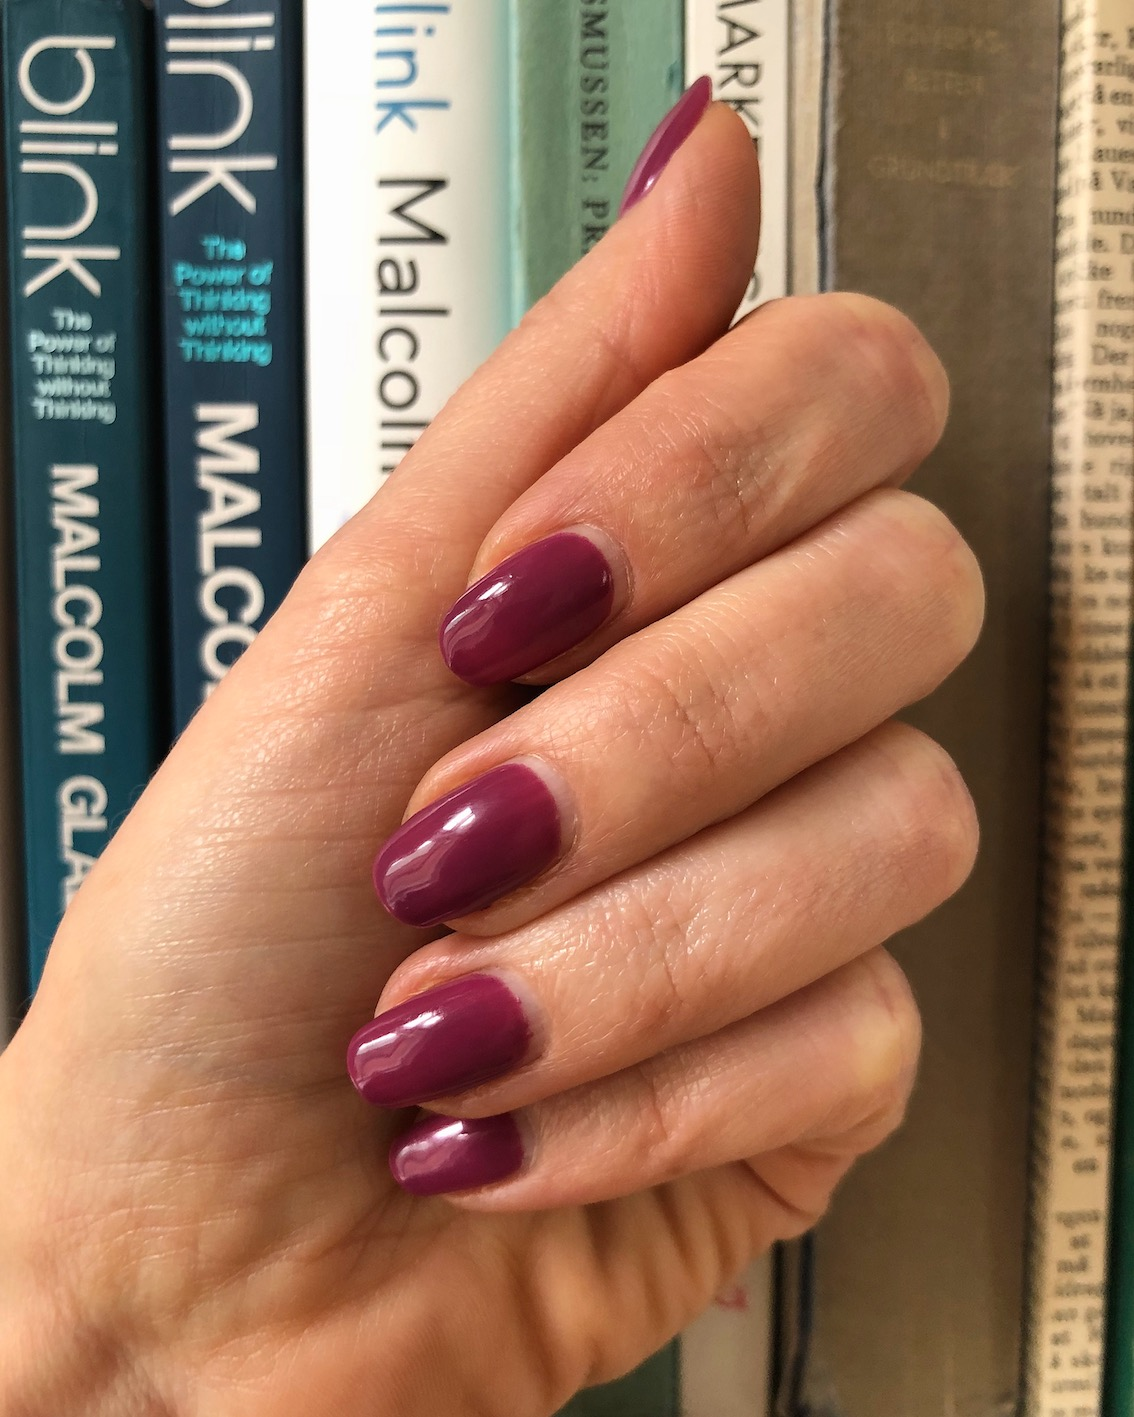 shellac luxe vurdering anmeldelse cnd shellac urbannotes.dk